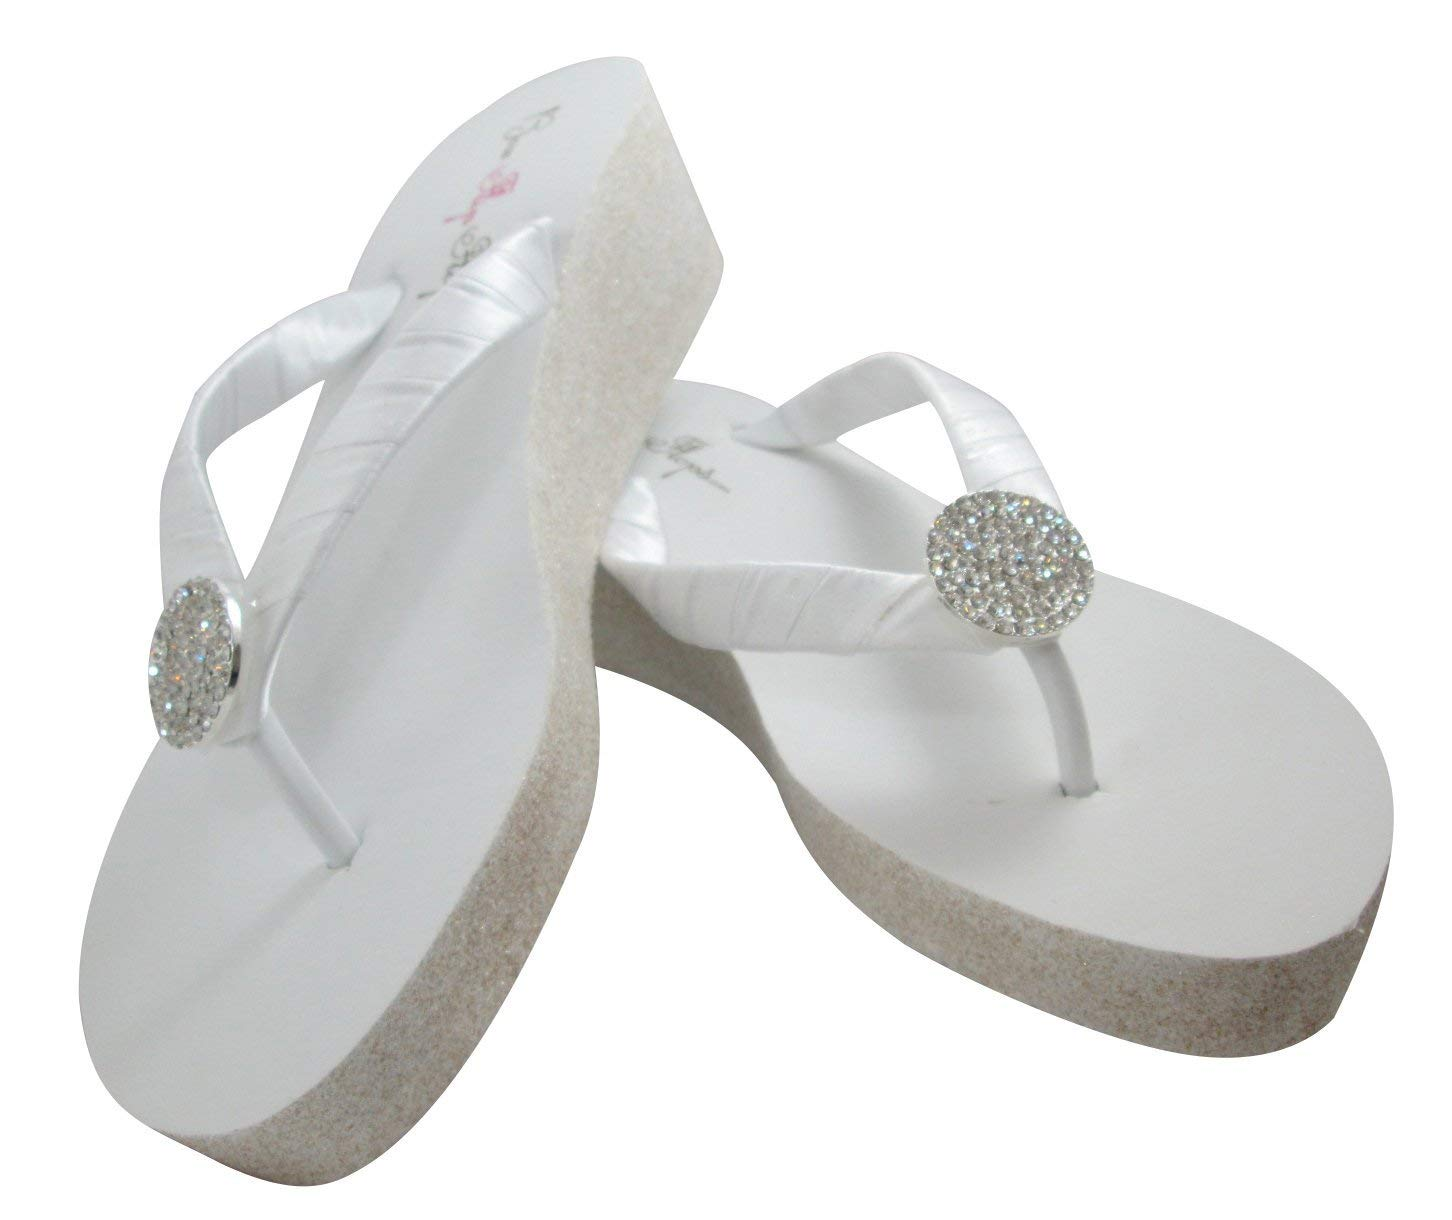 9abc5d0371fc Glitter 2 inch Heel Flip Flops Wedding White Wedges White Silver Glitter  Wedge Jewel Wedding Bridal